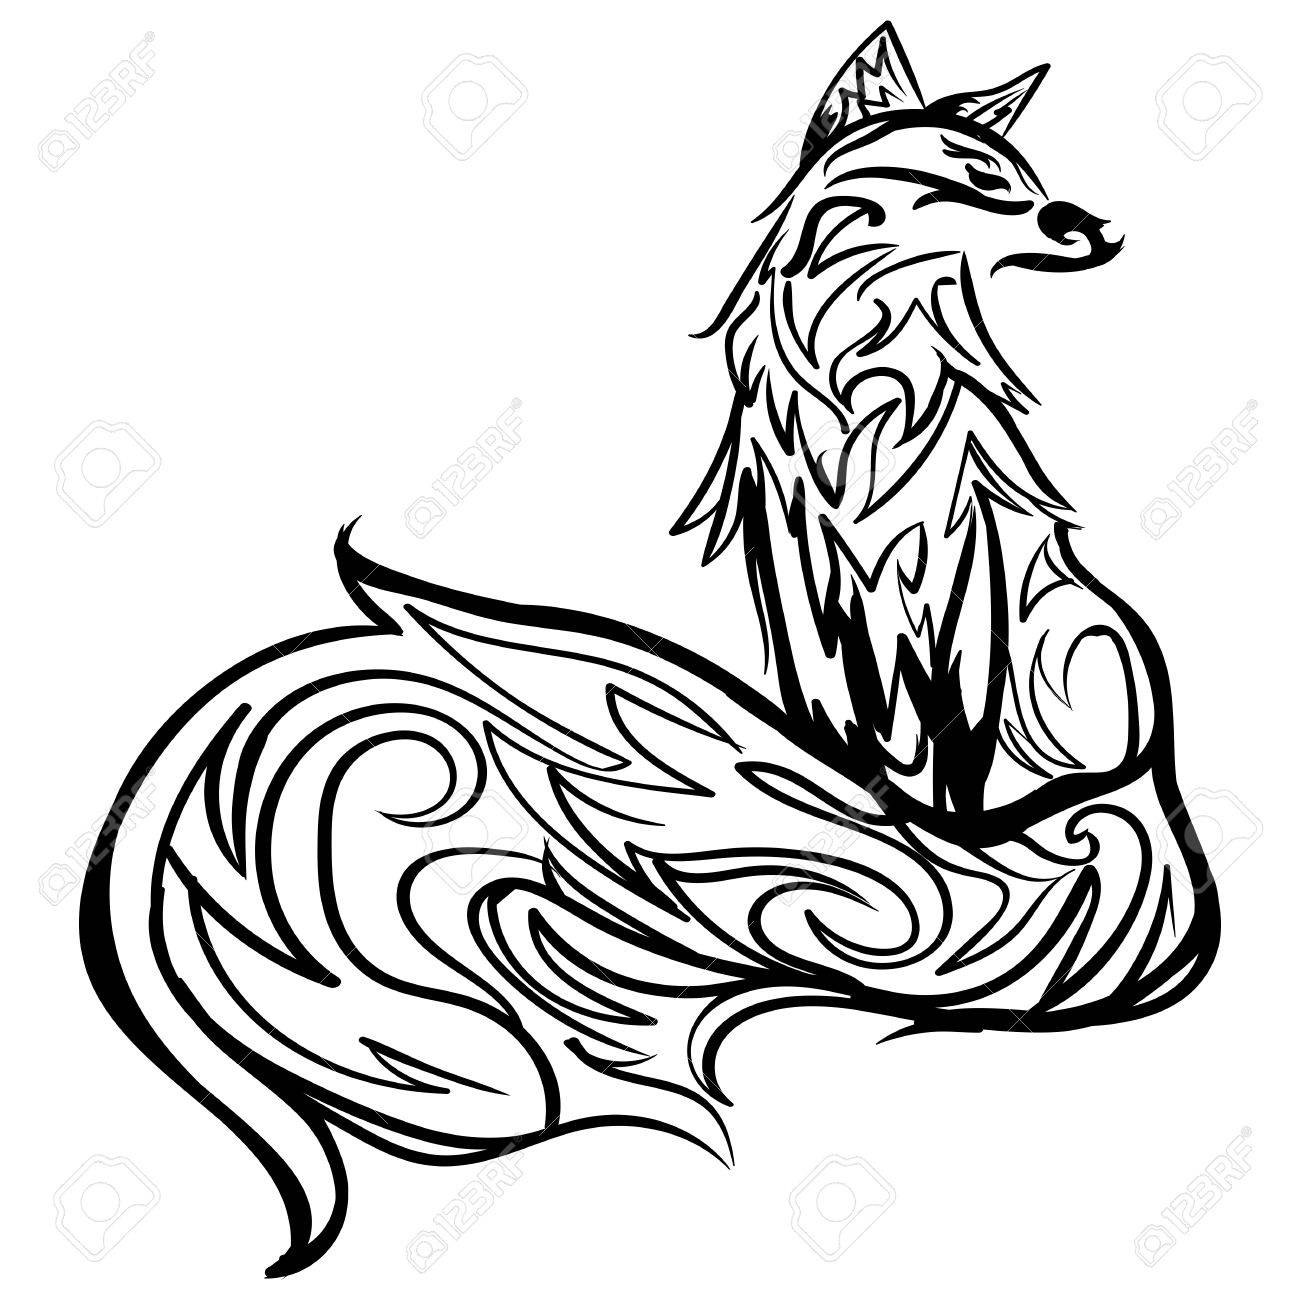 Stylized Fox Forest Animals Cute Fox Line Art Black And White